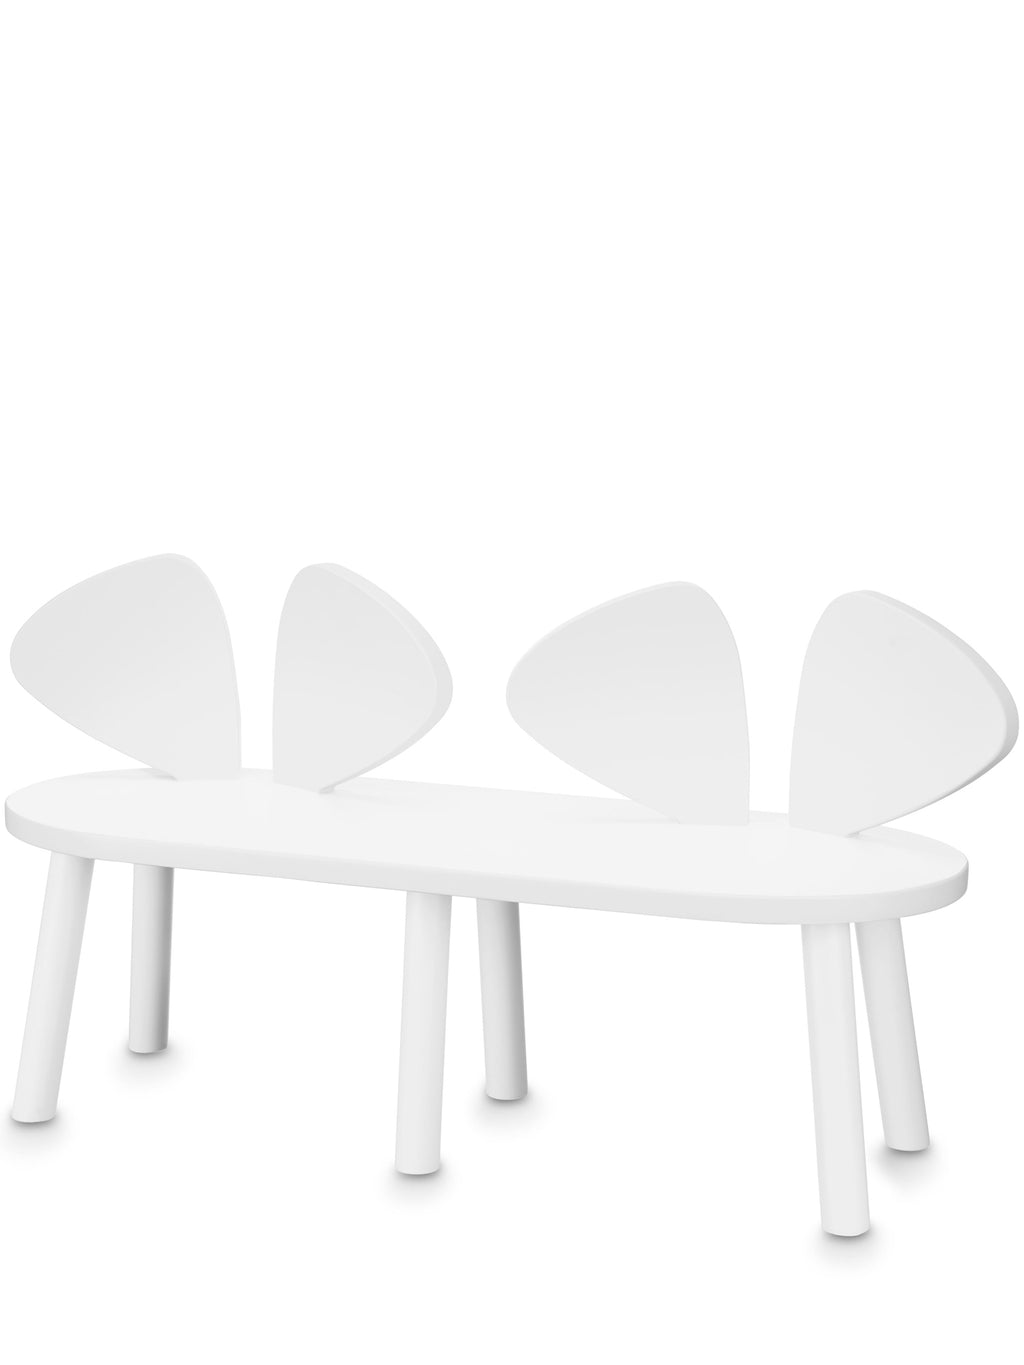 Nofred Mouse Bench White | Nofred Mouse Bench bænk hvid